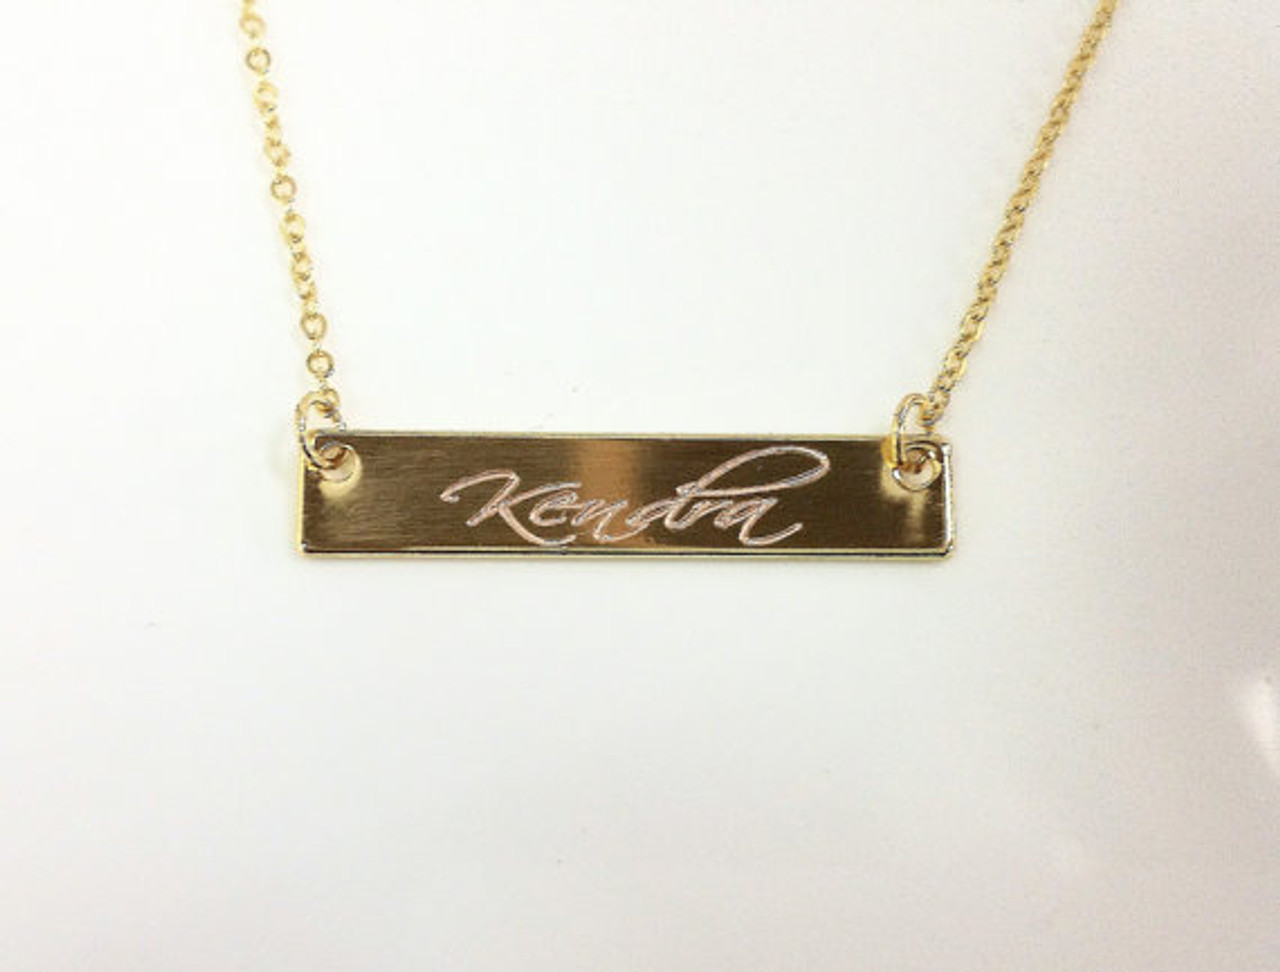 Classy Necklace Christina Chain Real Gold Plated Name